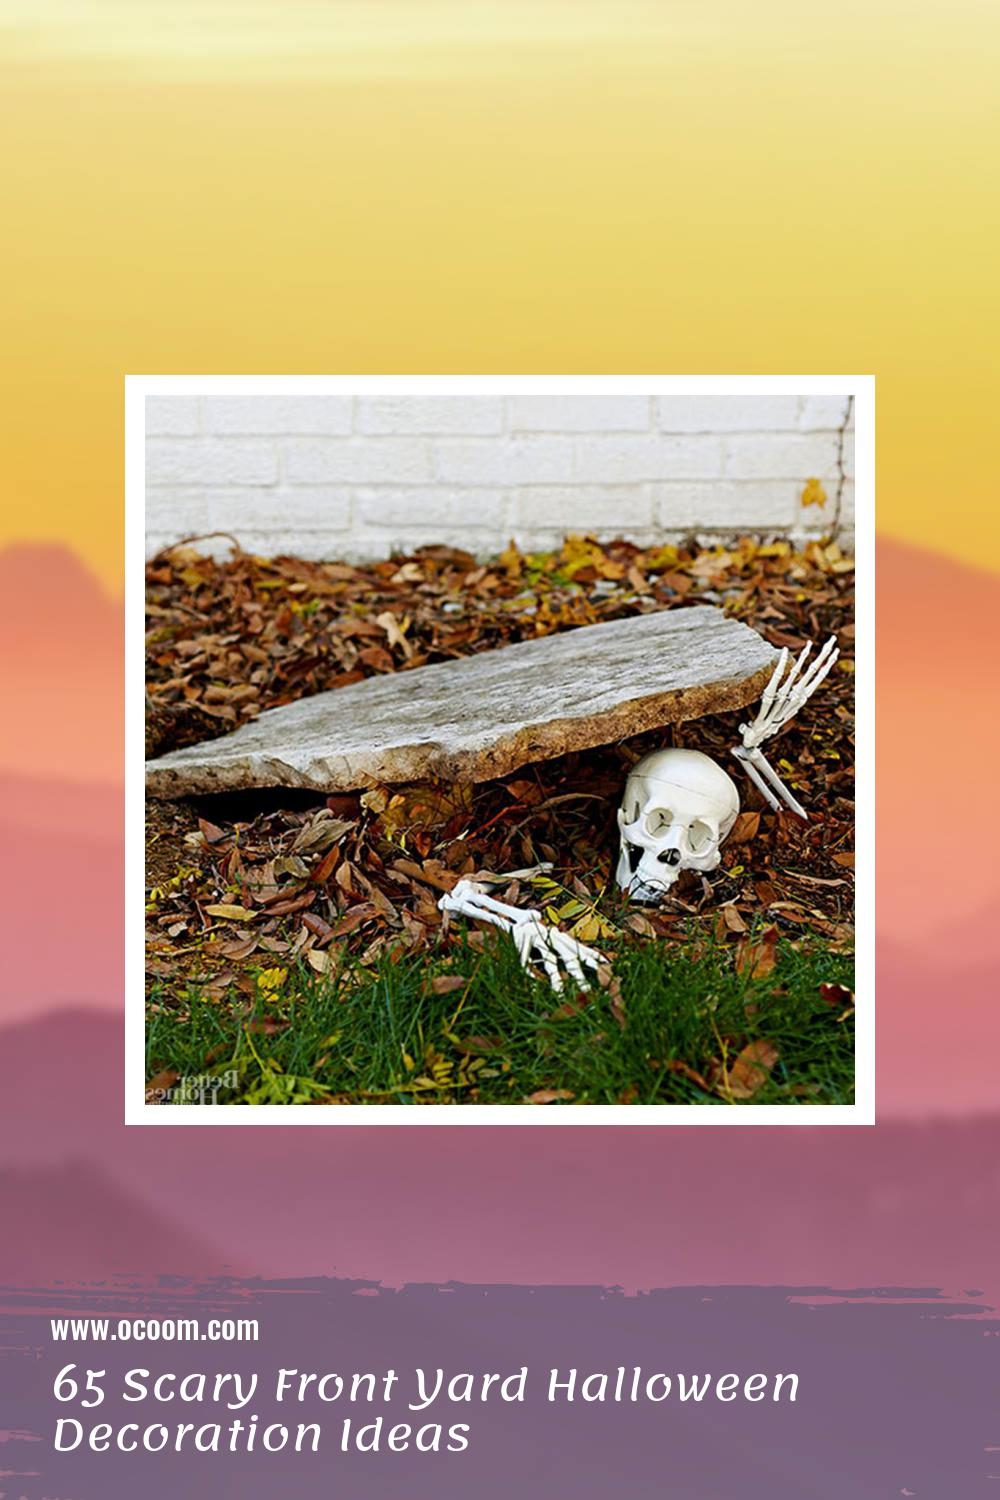 65 Scary Front Yard Halloween Decoration Ideas 64